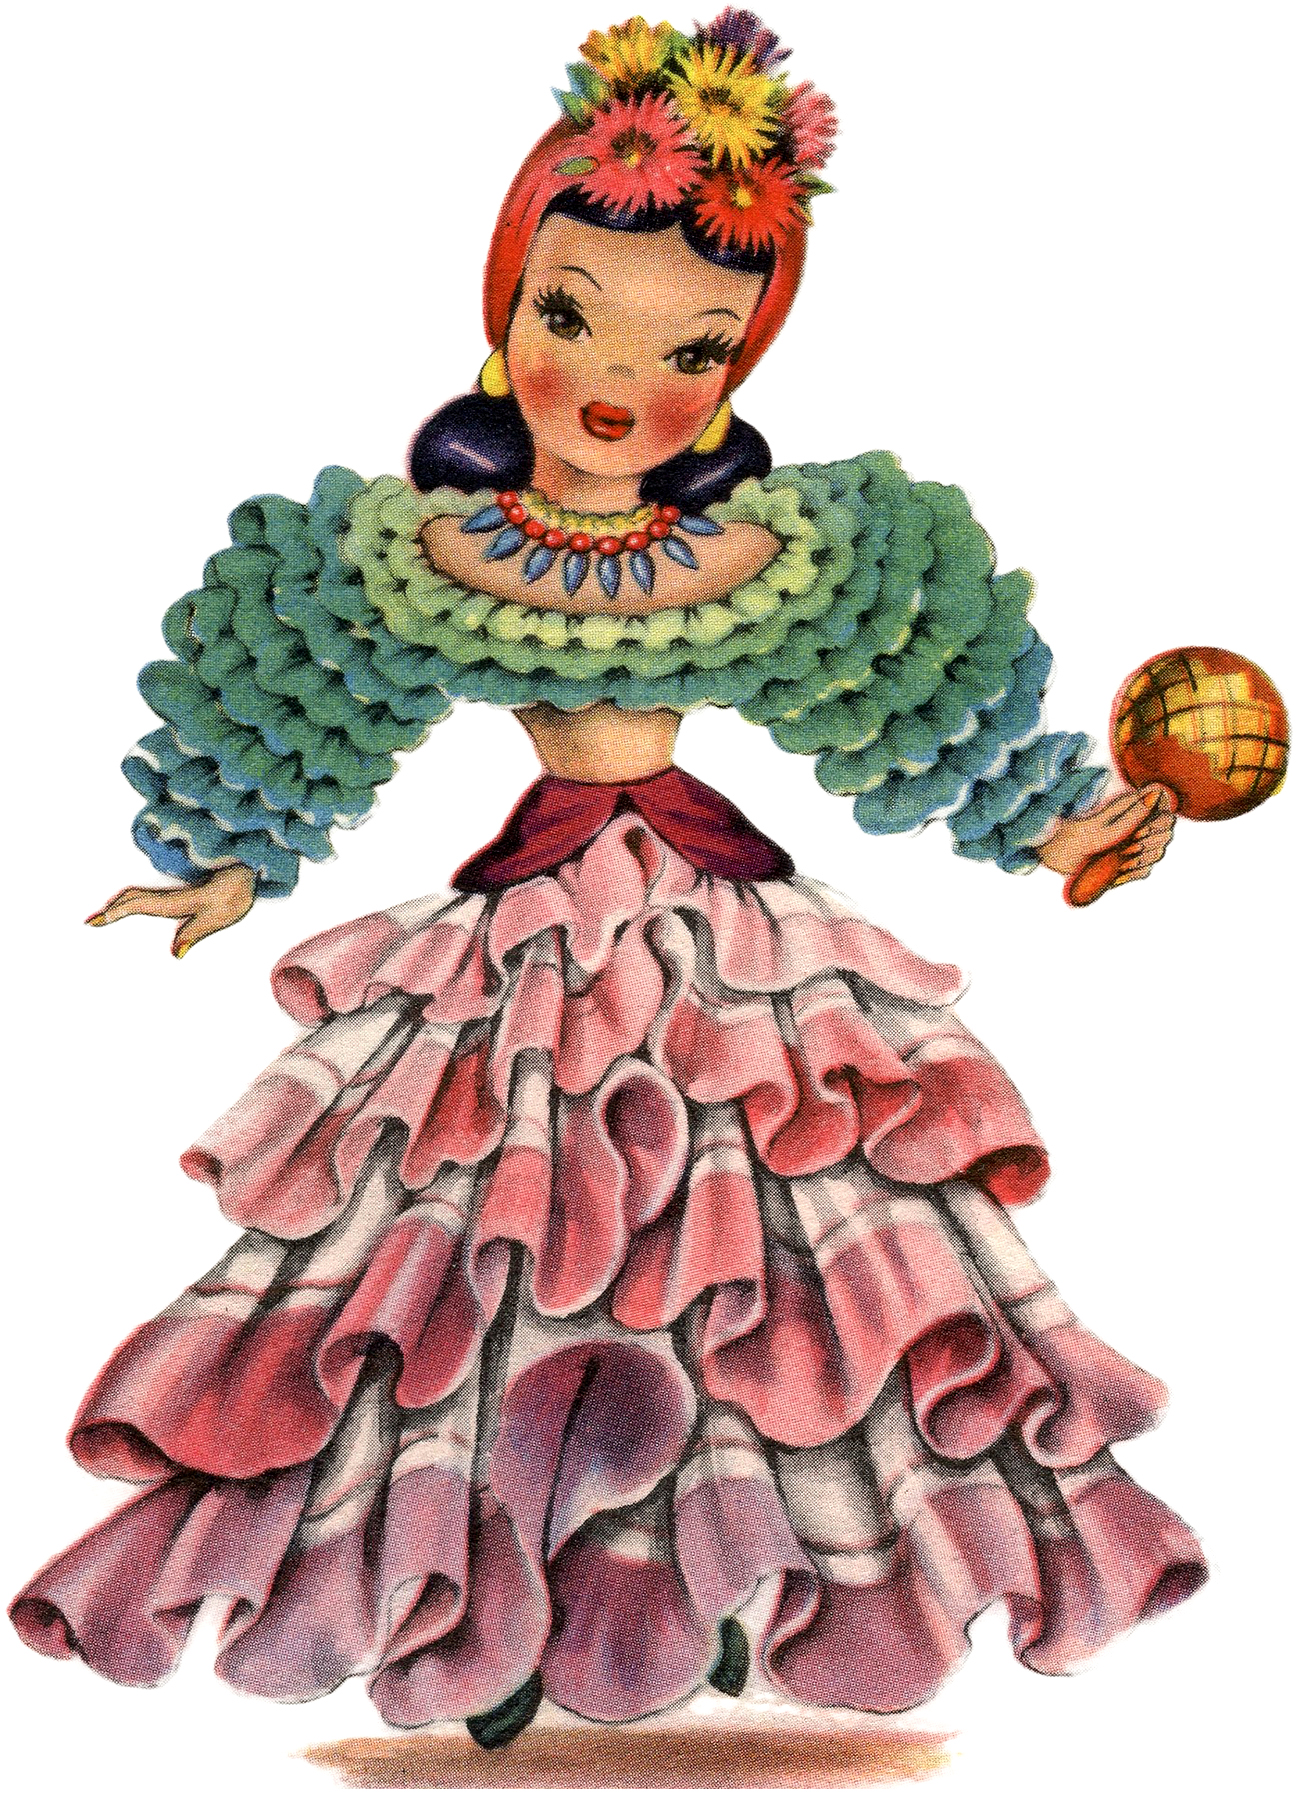 Retro Latin America Doll Image!